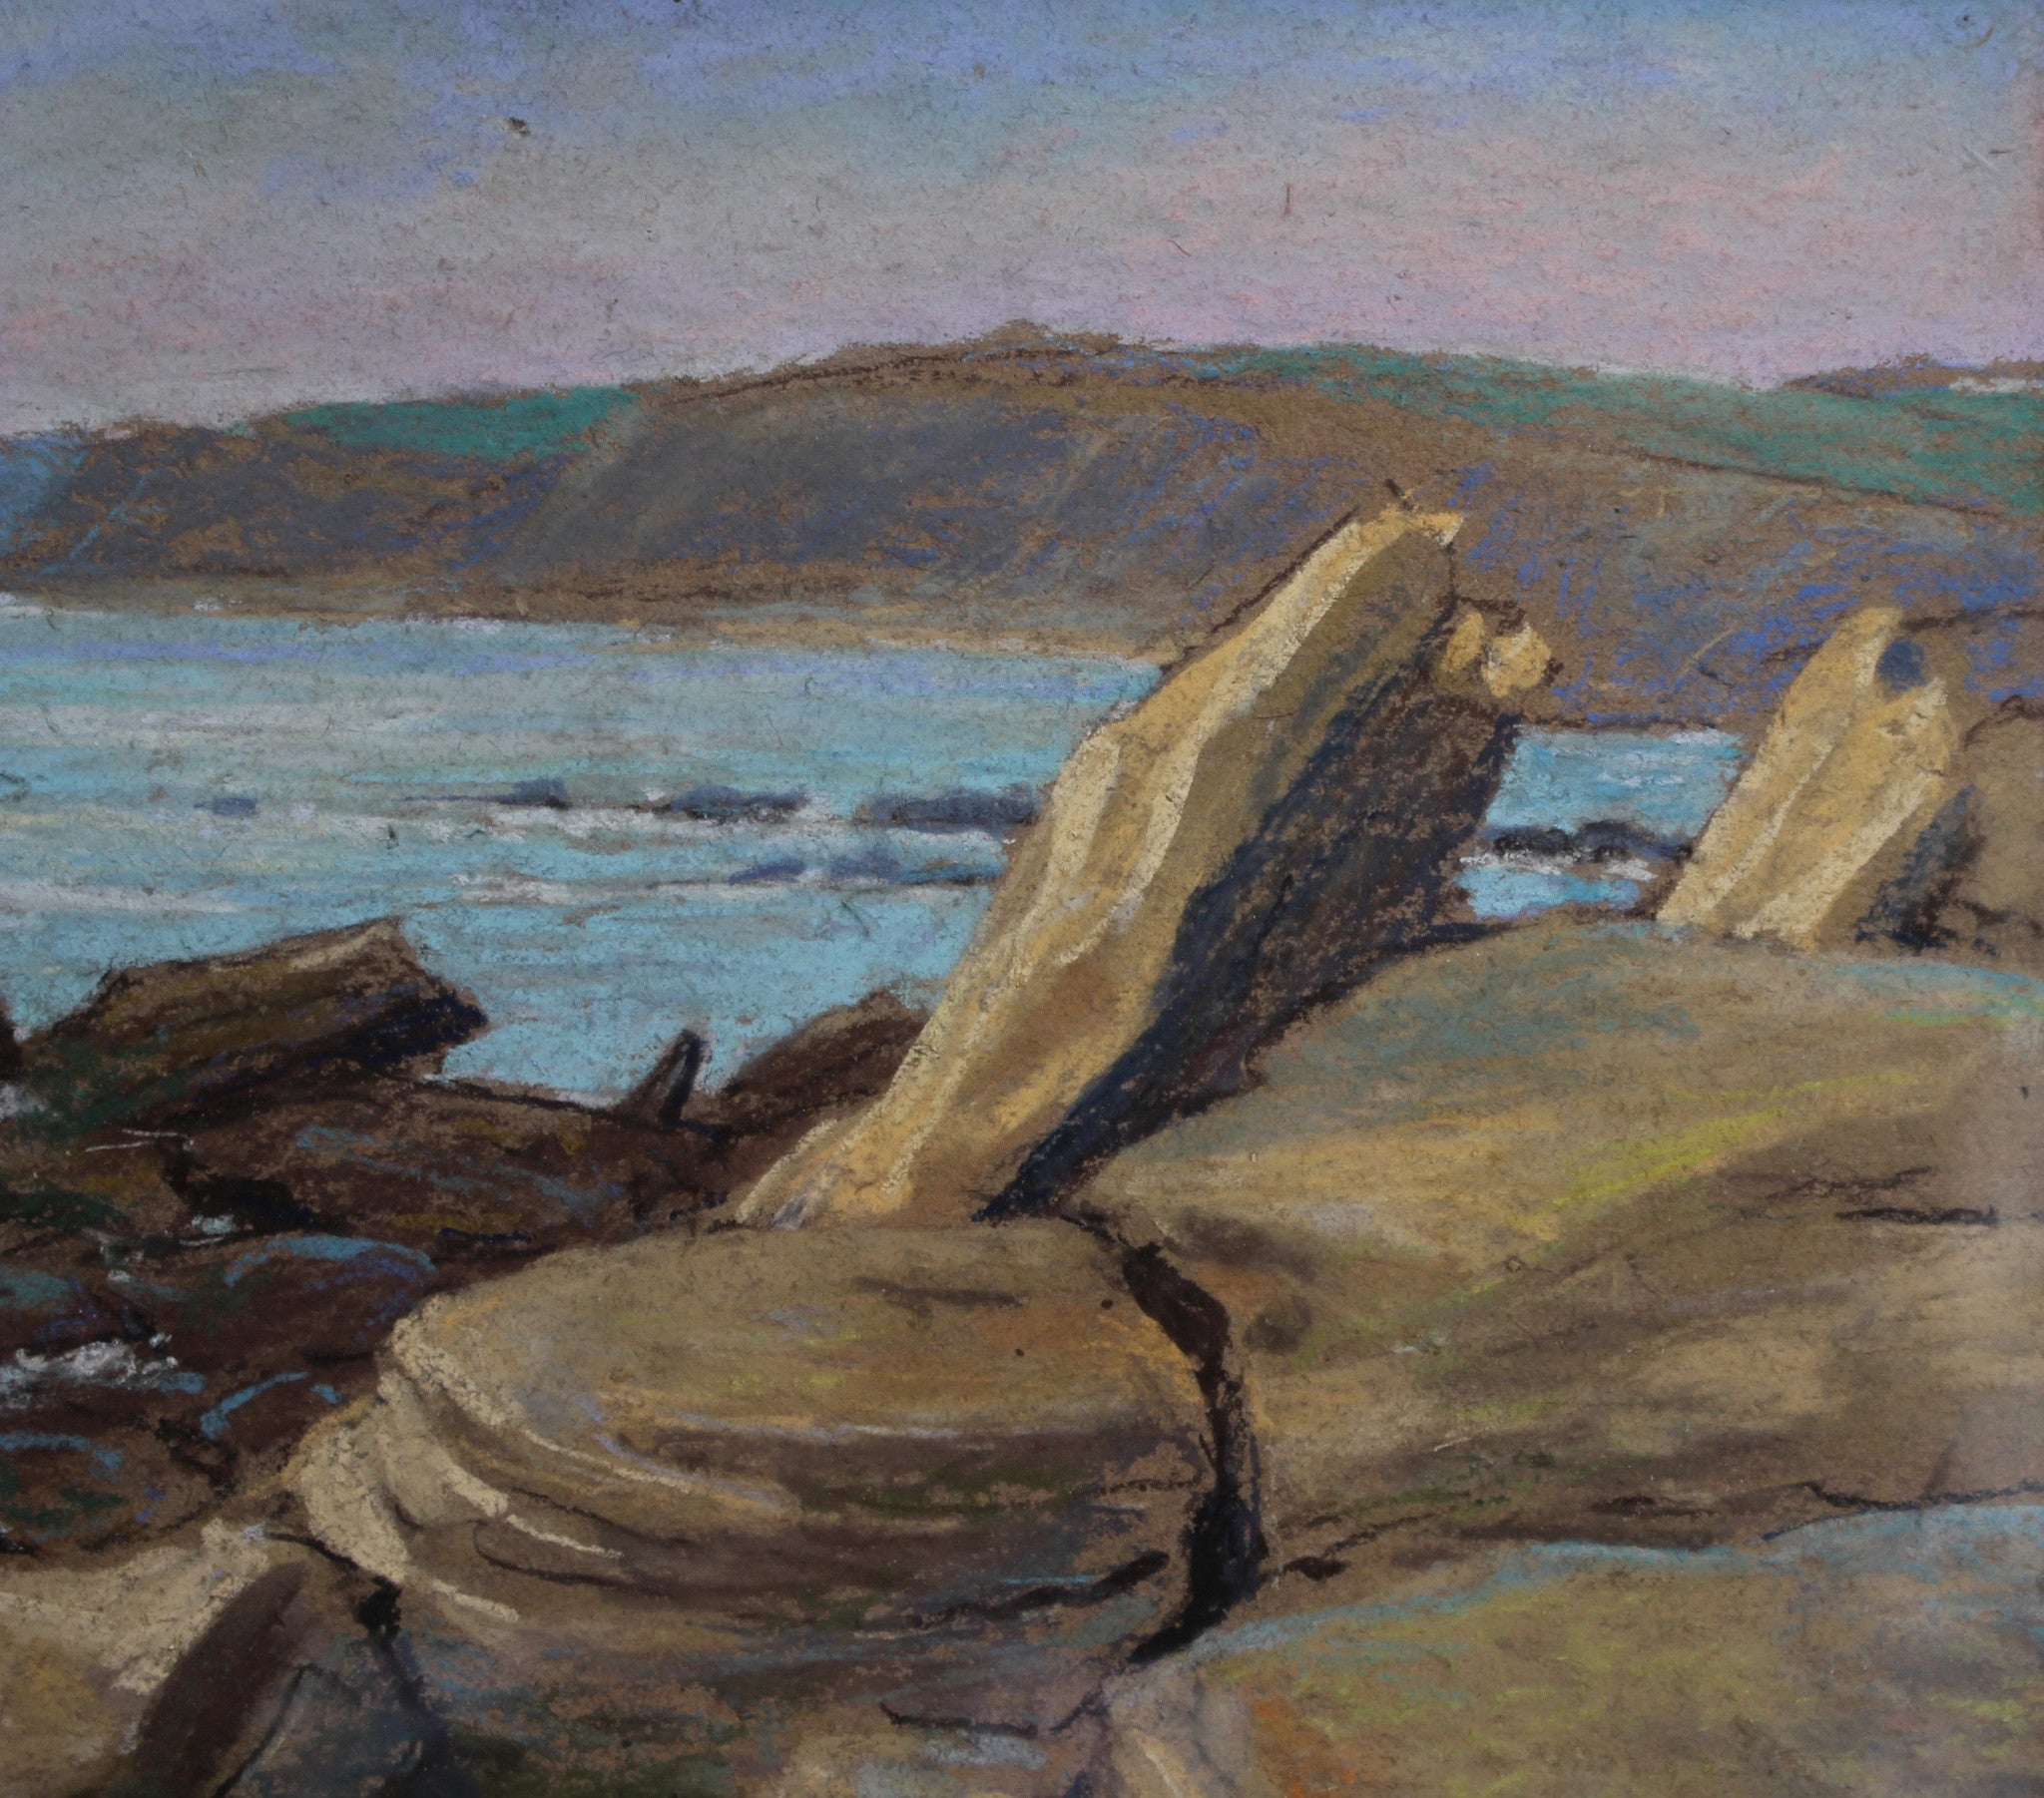 'Rocky Shore Audresselles, France' by Marcel Degueldre (c. 1930s)